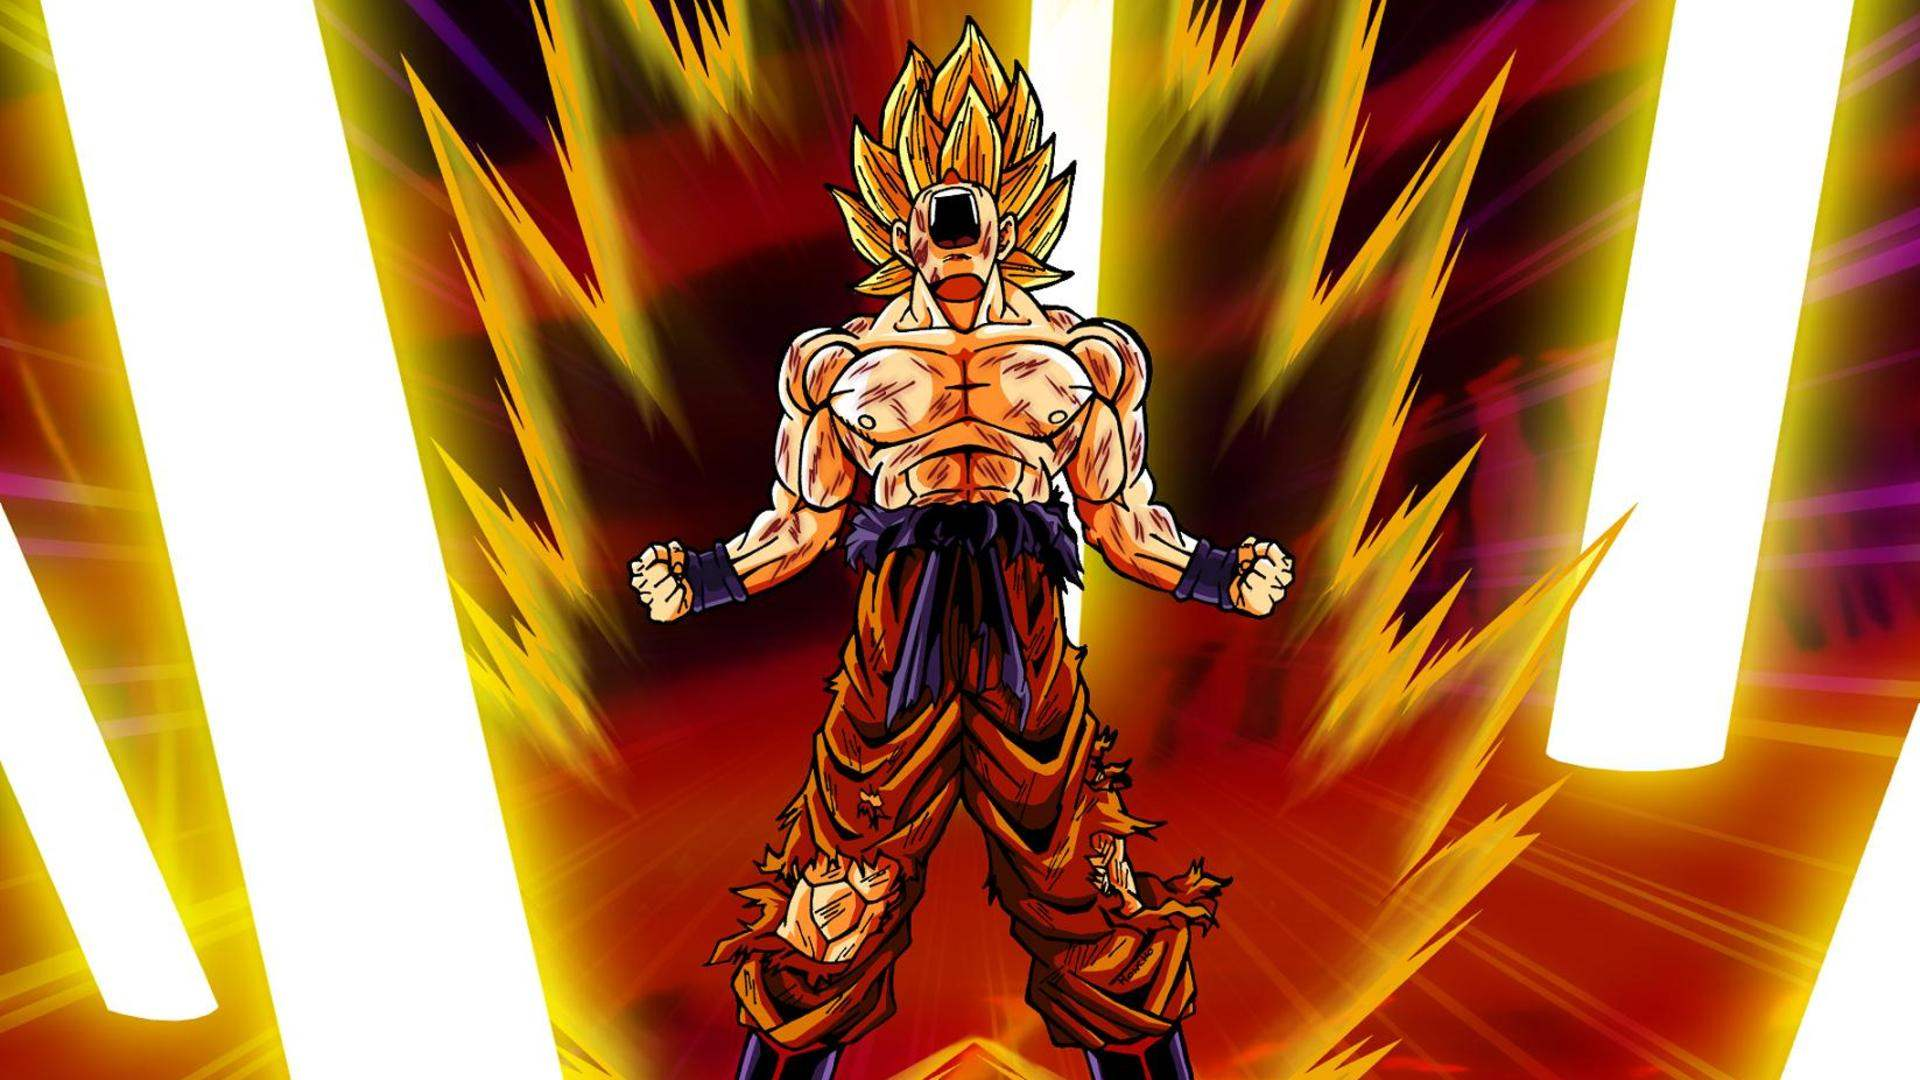 Dragon Ball Z Wallpapers Goku Super Saiyan 10 5 1920x1080